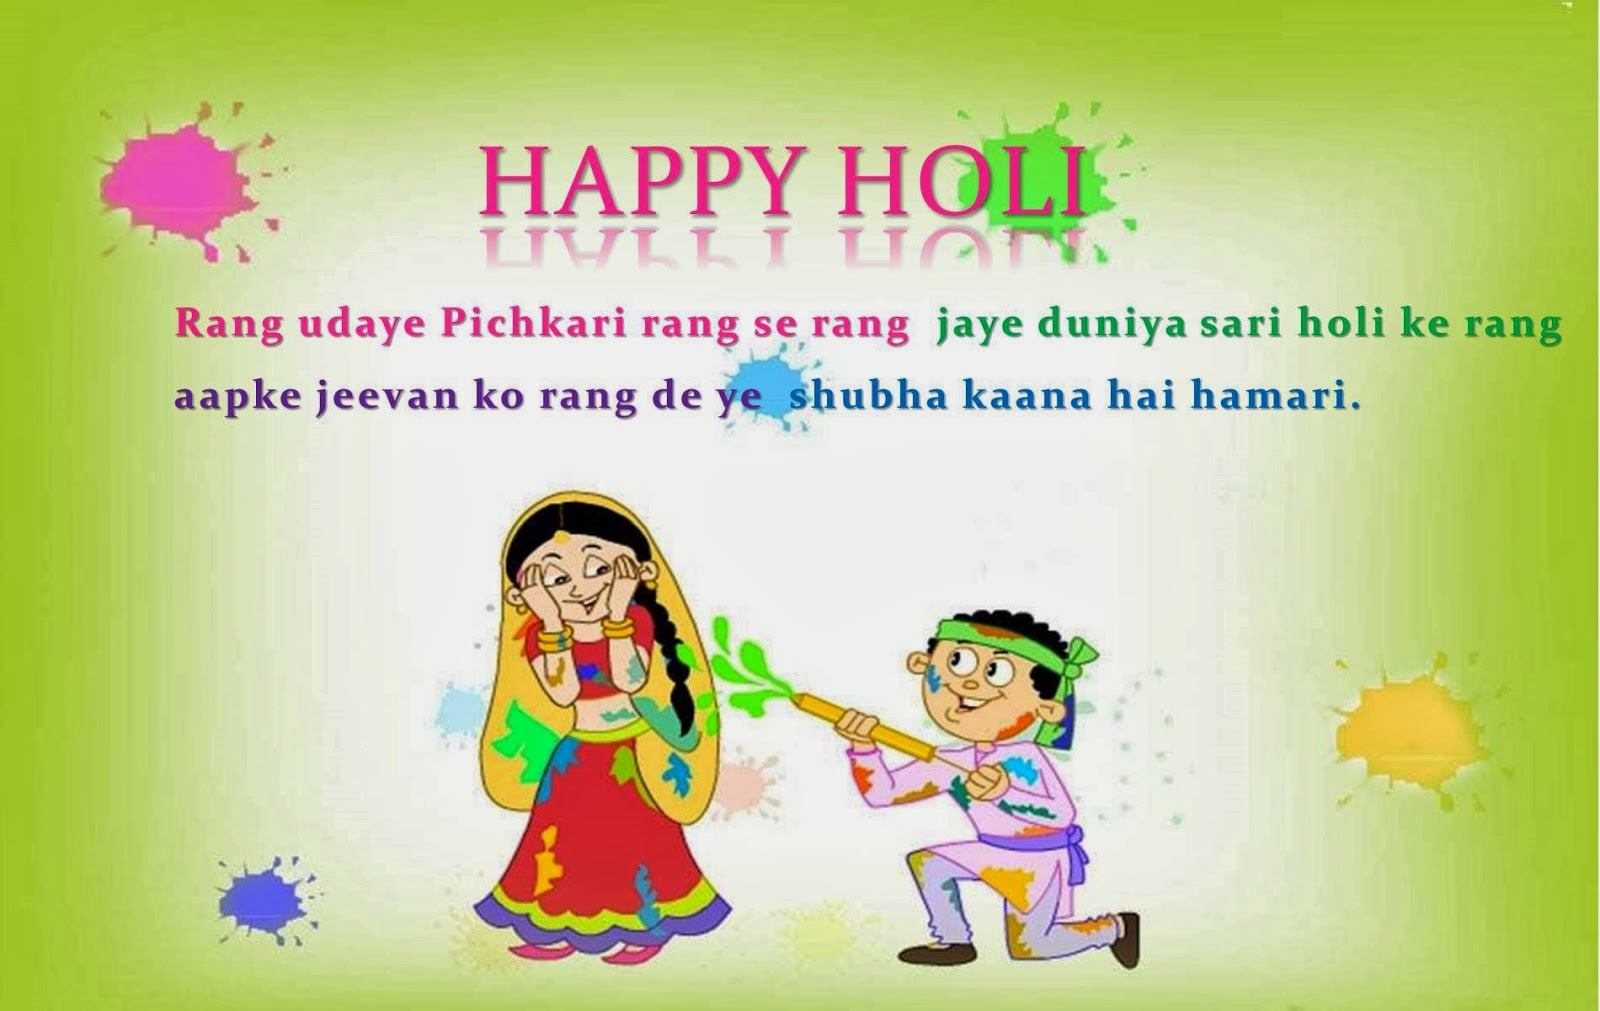 Educate all universities holi festival of colours 2015 we also listed best hd wall papers for happy holi 2015 happy holi 2015 sms greetings quotes in english and hindi language kristyandbryce Image collections